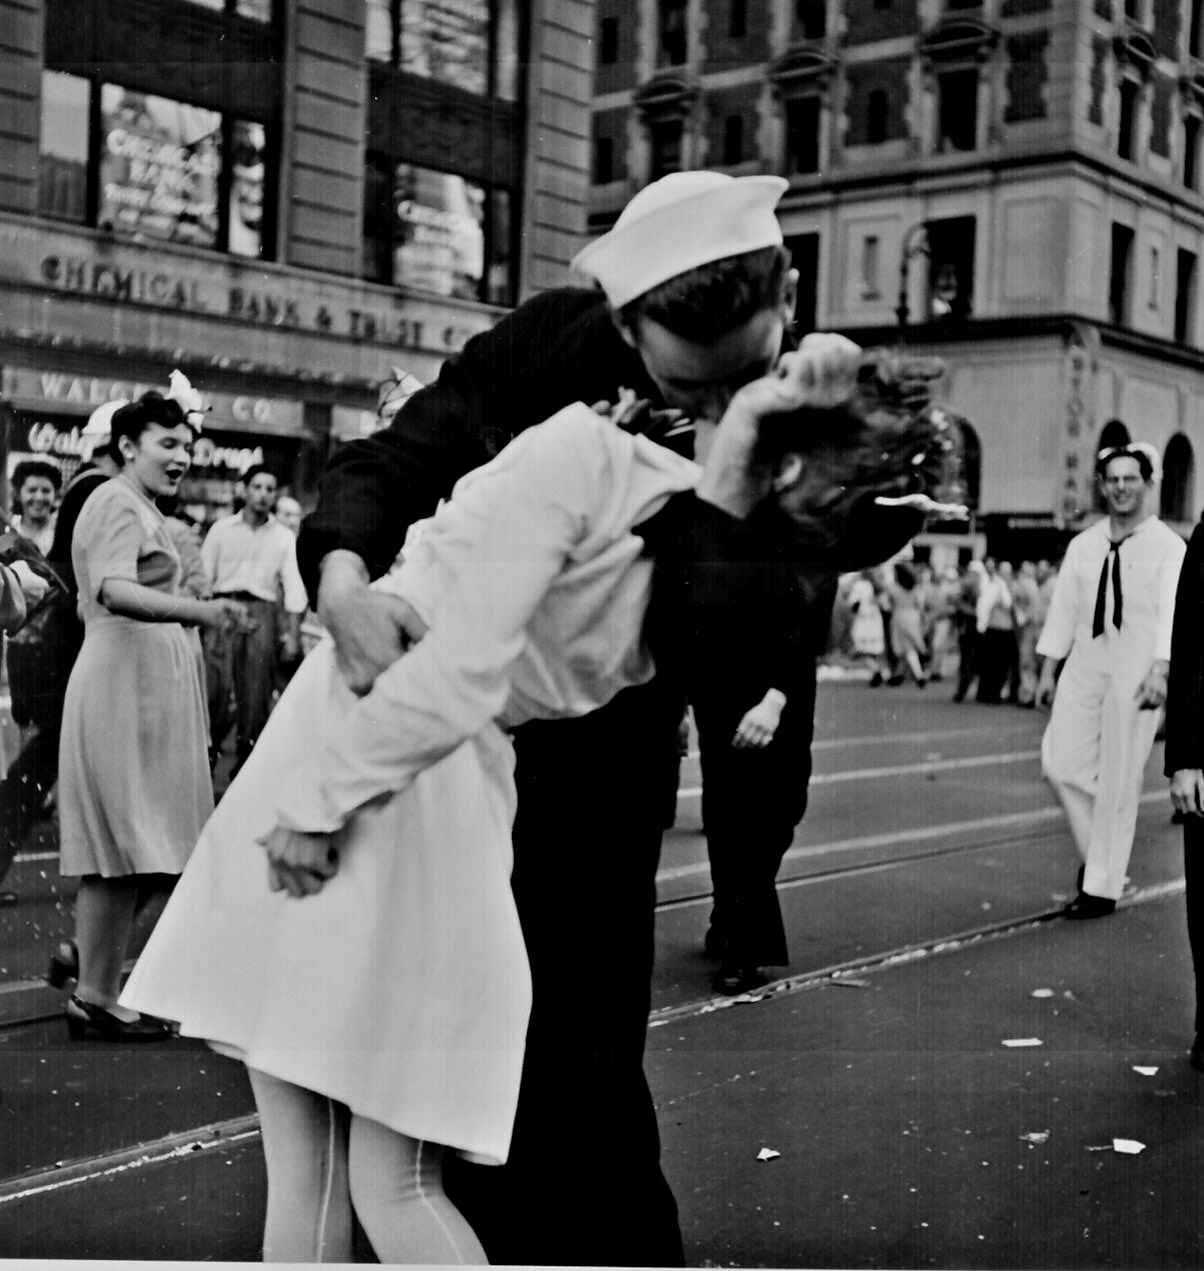 """""""New York City celebrating the surrender of Japan. They threw anything and kissed anybody in Times Square."""" Lt. Victor Jorgensen, August 14, 1945"""